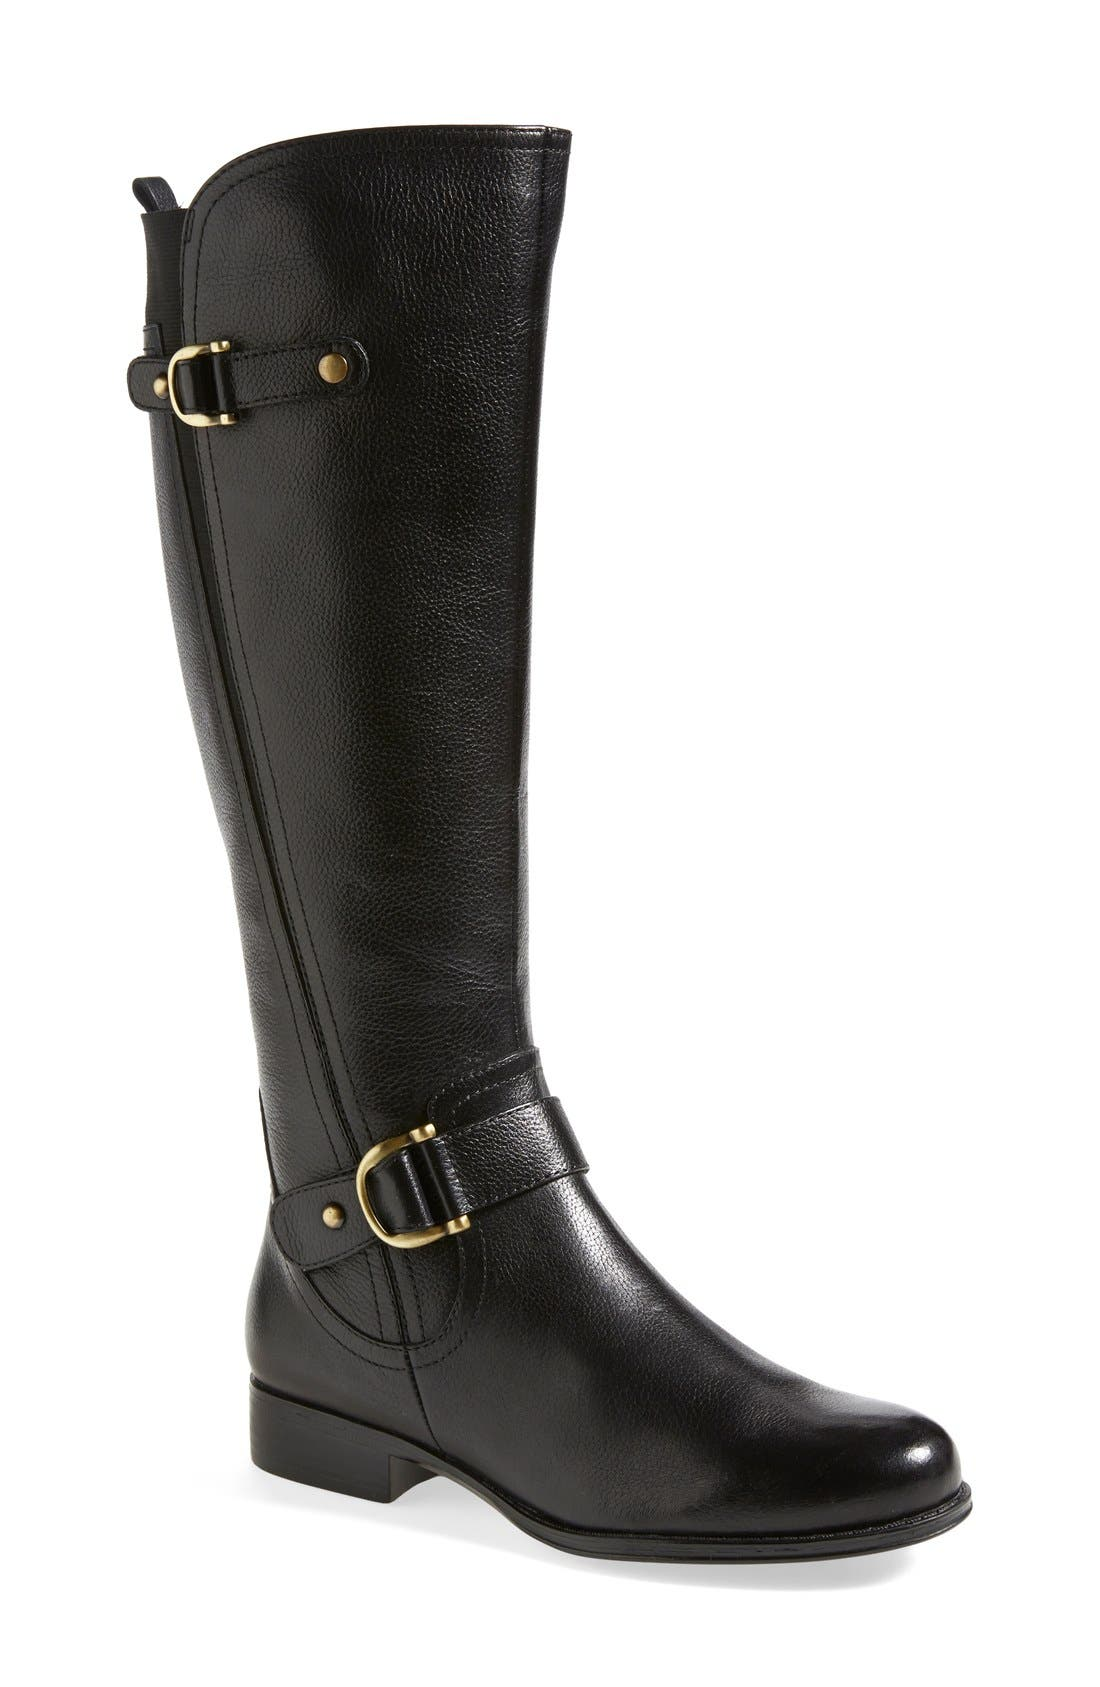 Alternate Image 1 Selected - Naturalizer 'Jersey' Leather Riding Boot (Women)